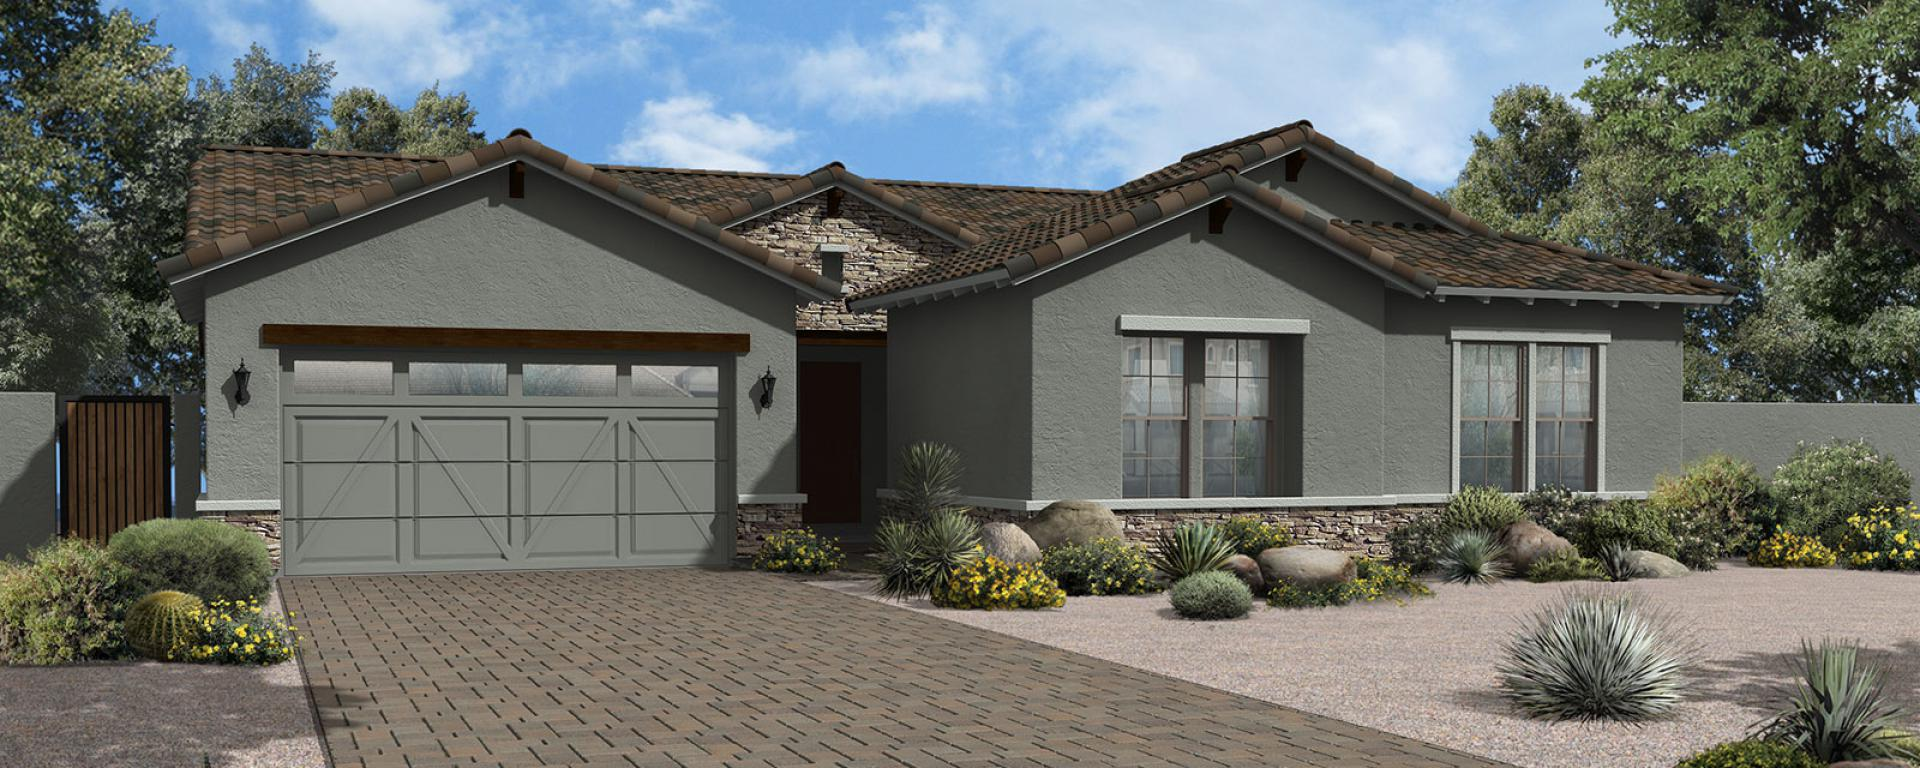 Yuma new home plan for legacy estates at morrison ranch for Ashton house